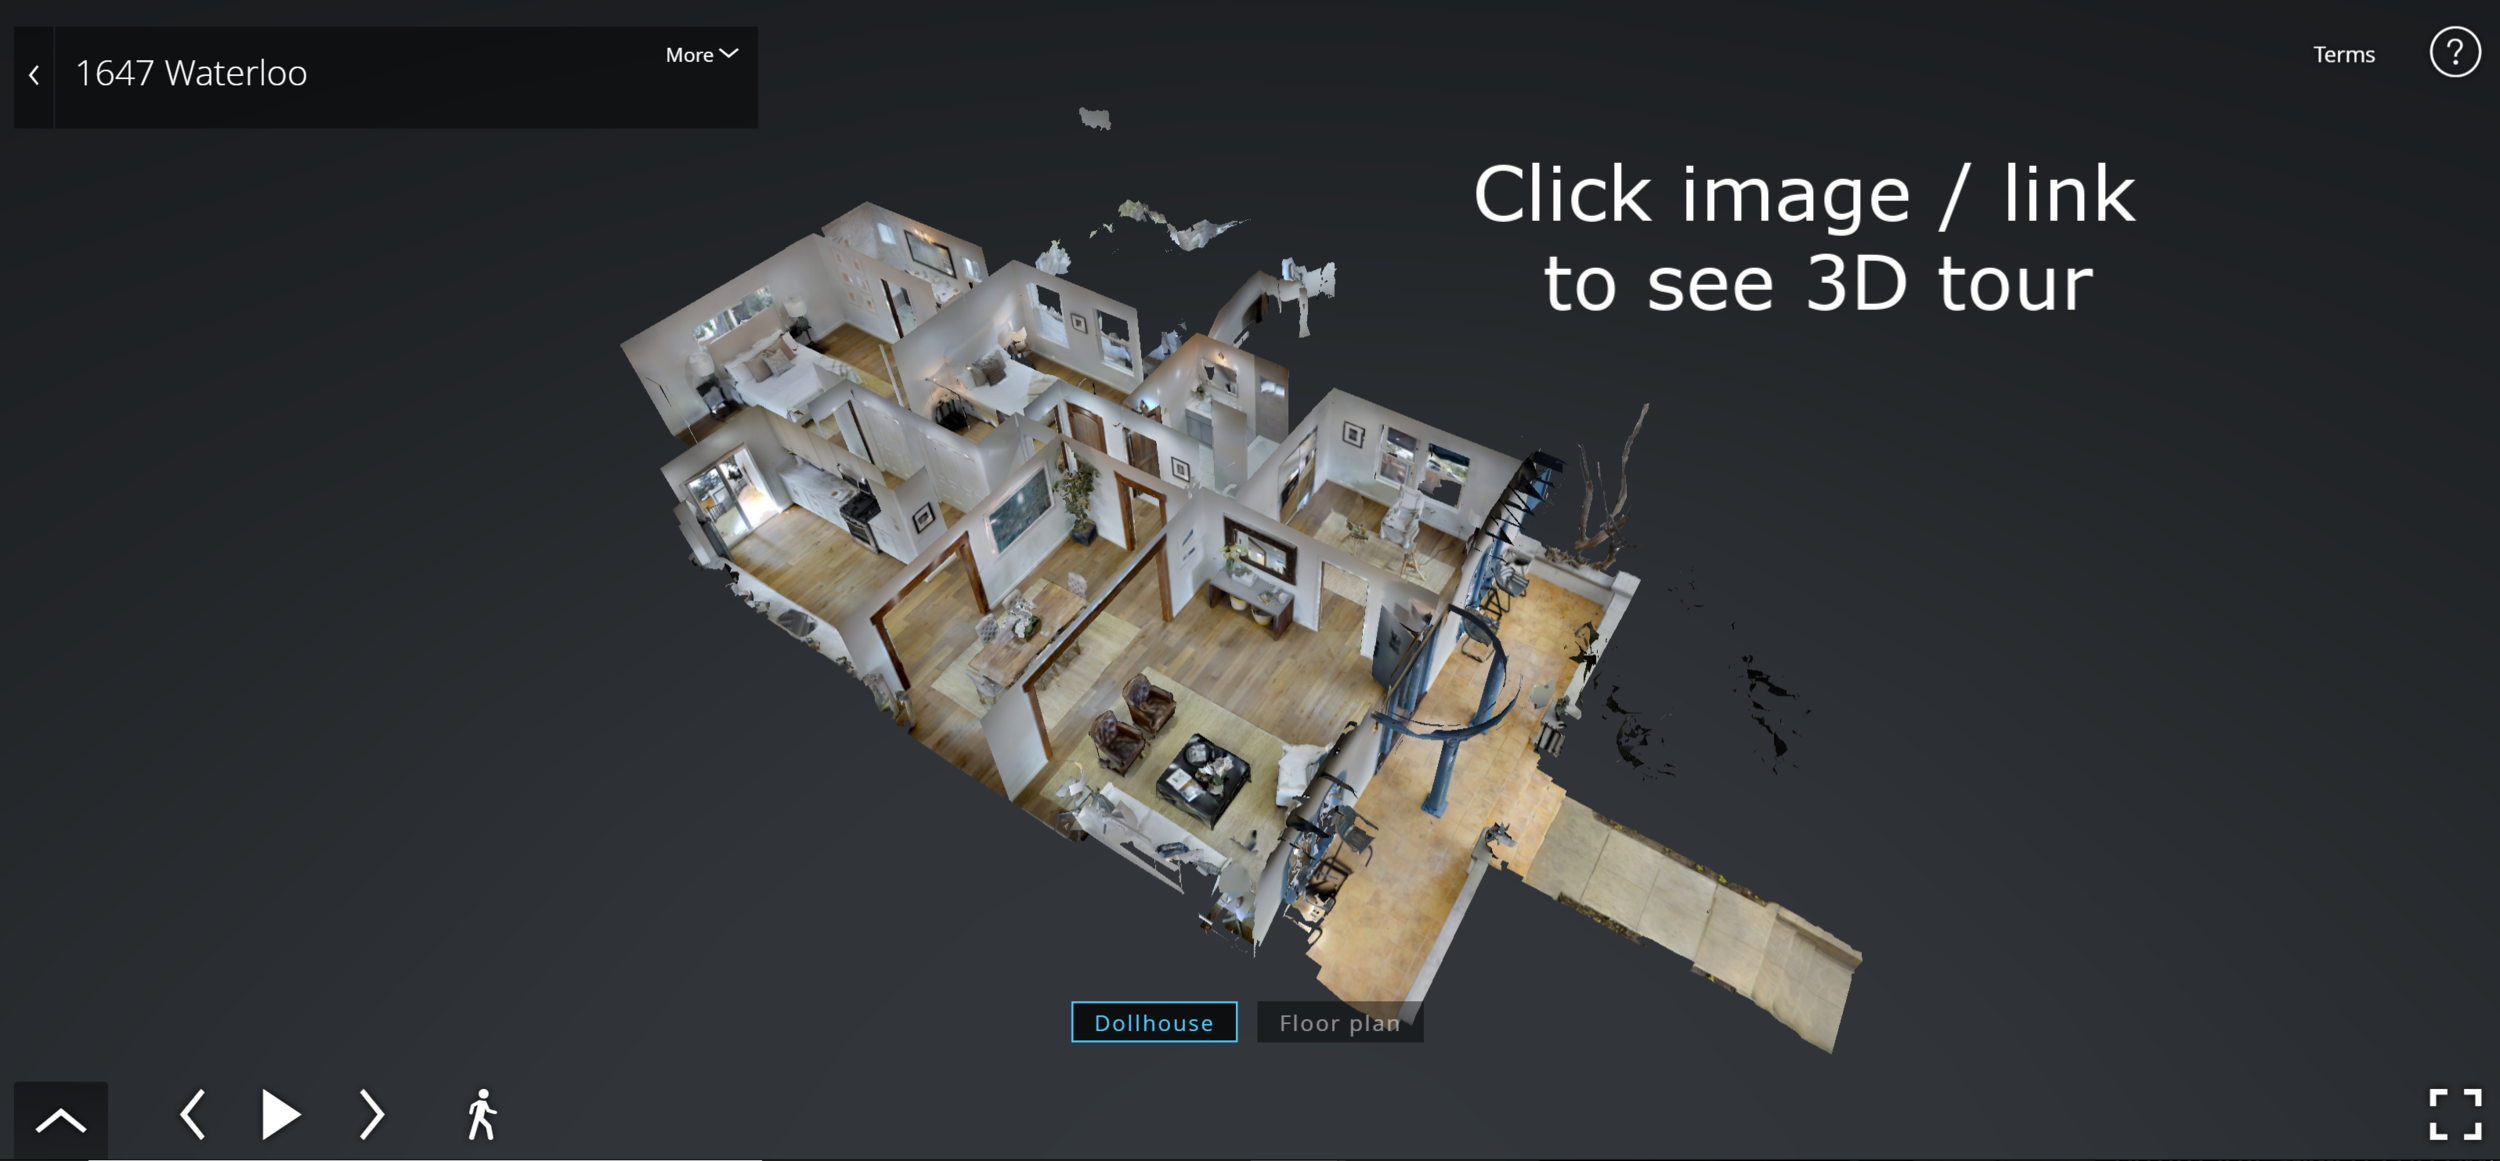 Click on the image to view a 3D scan of the property